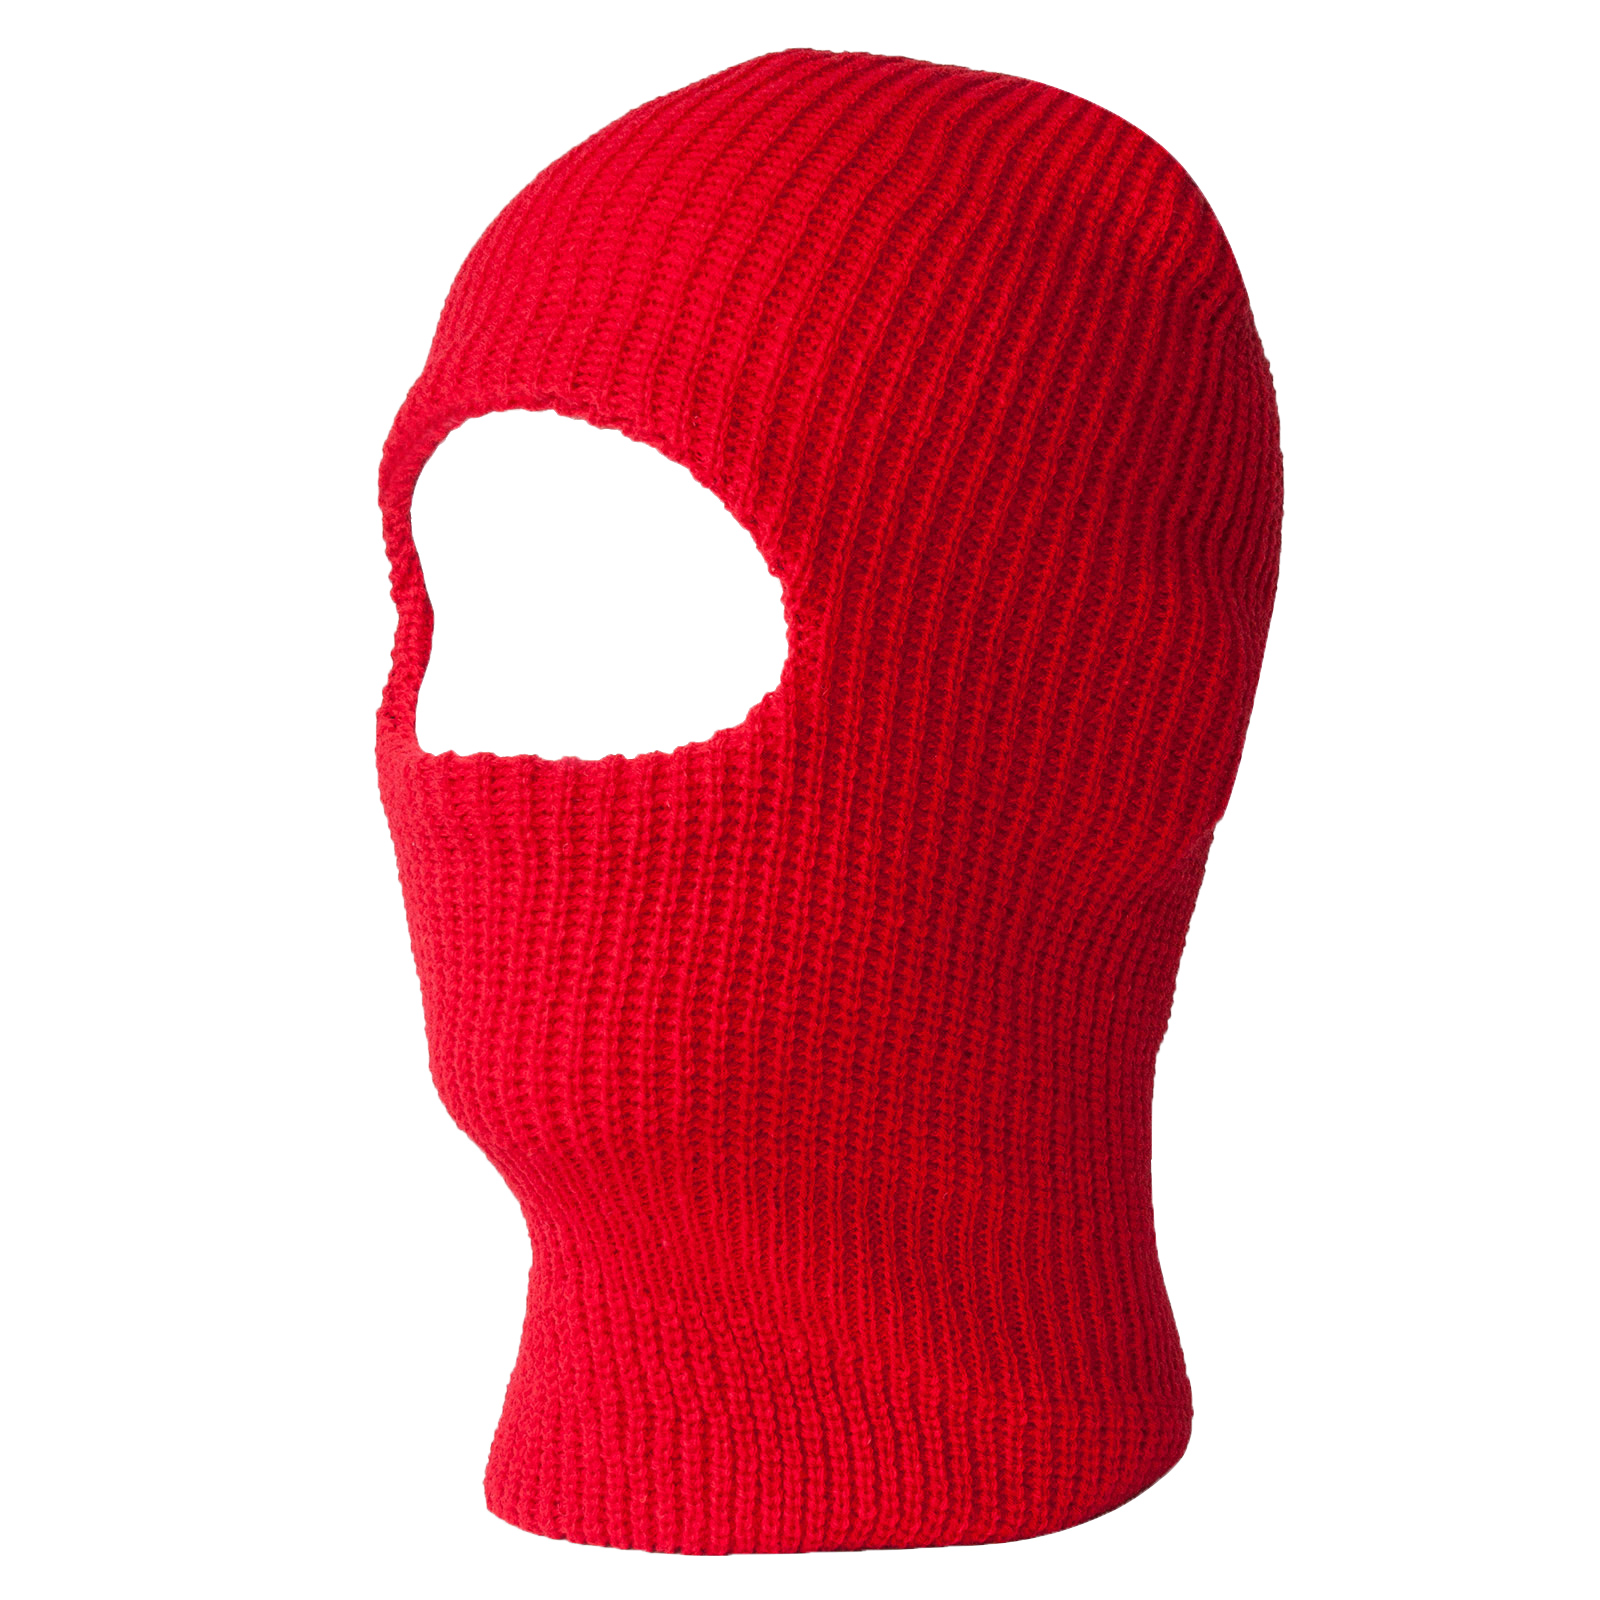 Red One Hole Ski Mask by